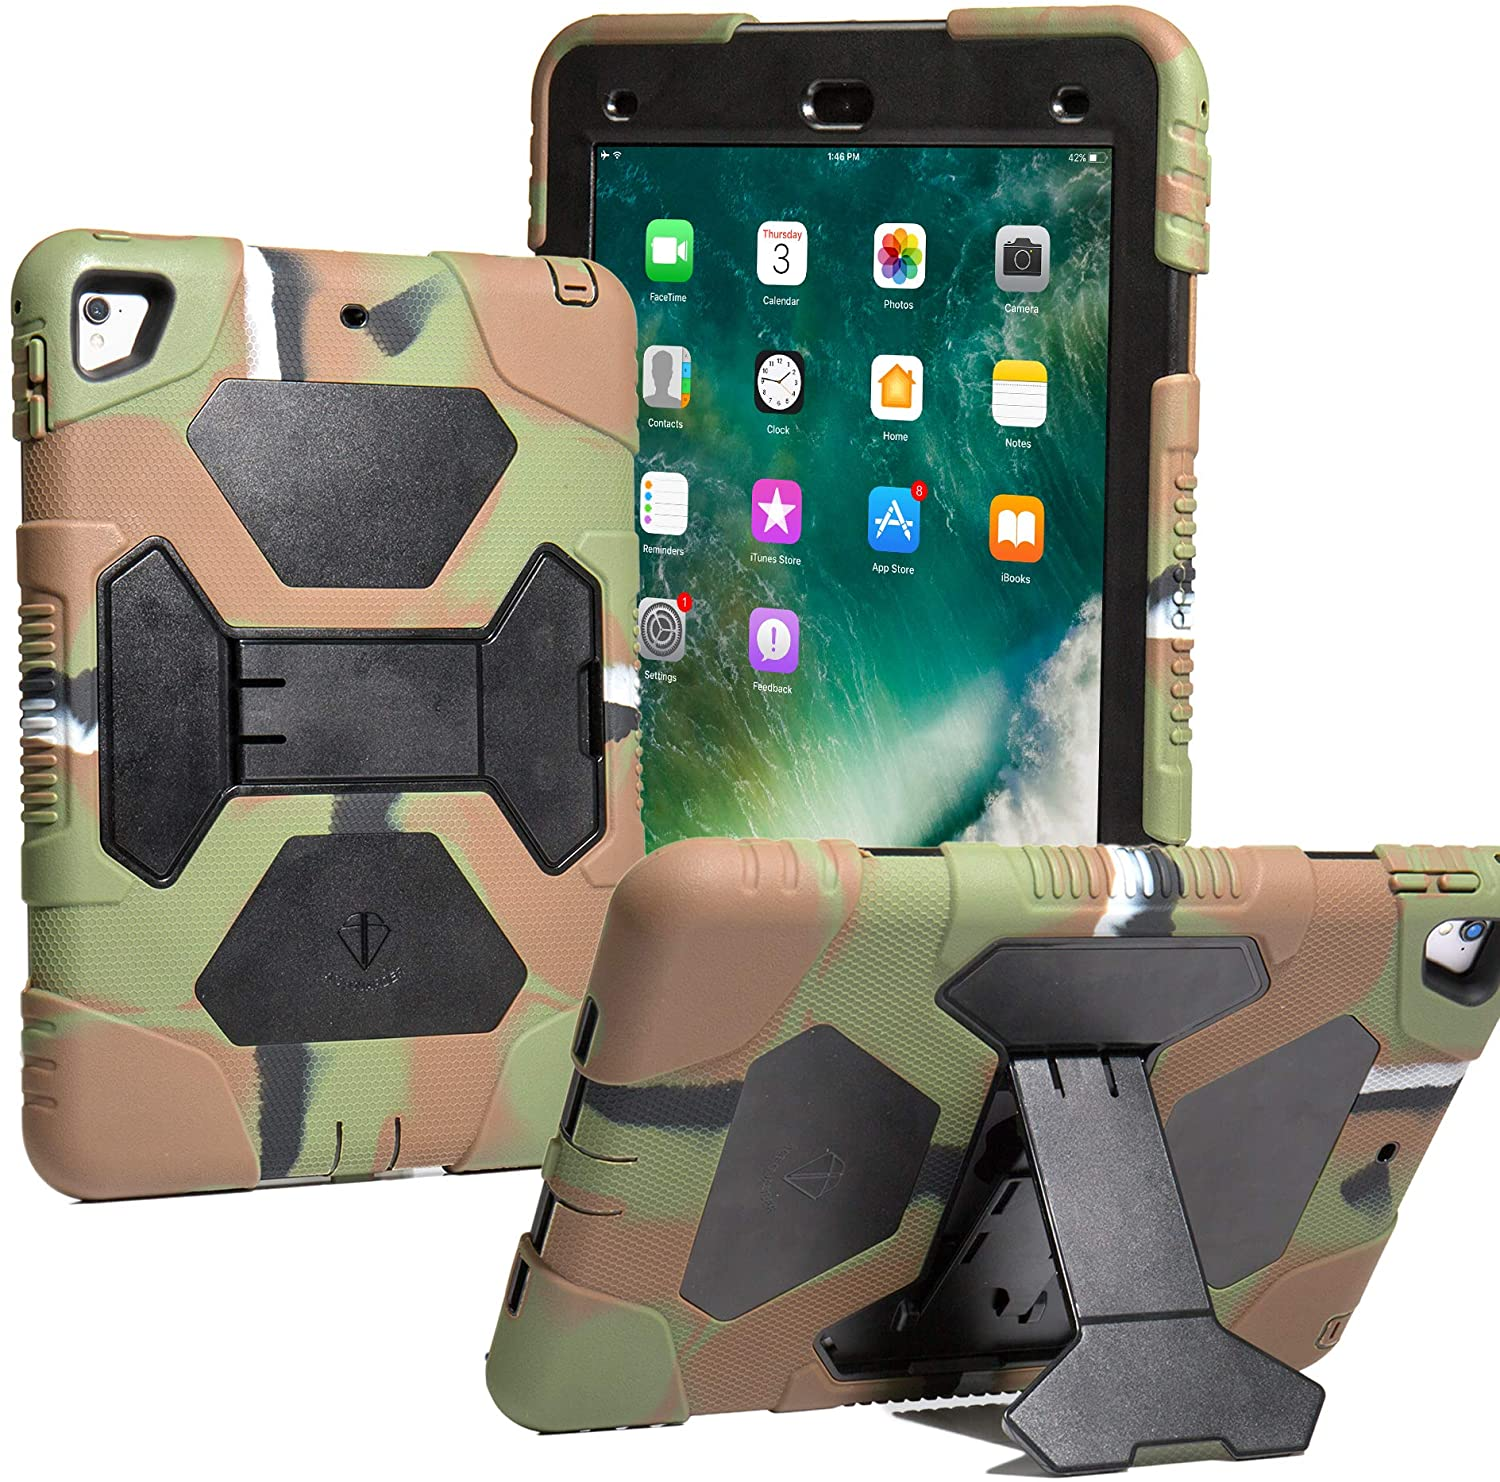 ACEGUARDERS iPad 9.7 2017/2018 & iPad Air 2 & iPad Pro 9.7(2016) Case - Shockproof Impact Resistant Protective Case Cover Full Body Rugged for Kids with Kickstand (iPad 9.7 case, Army/Black)